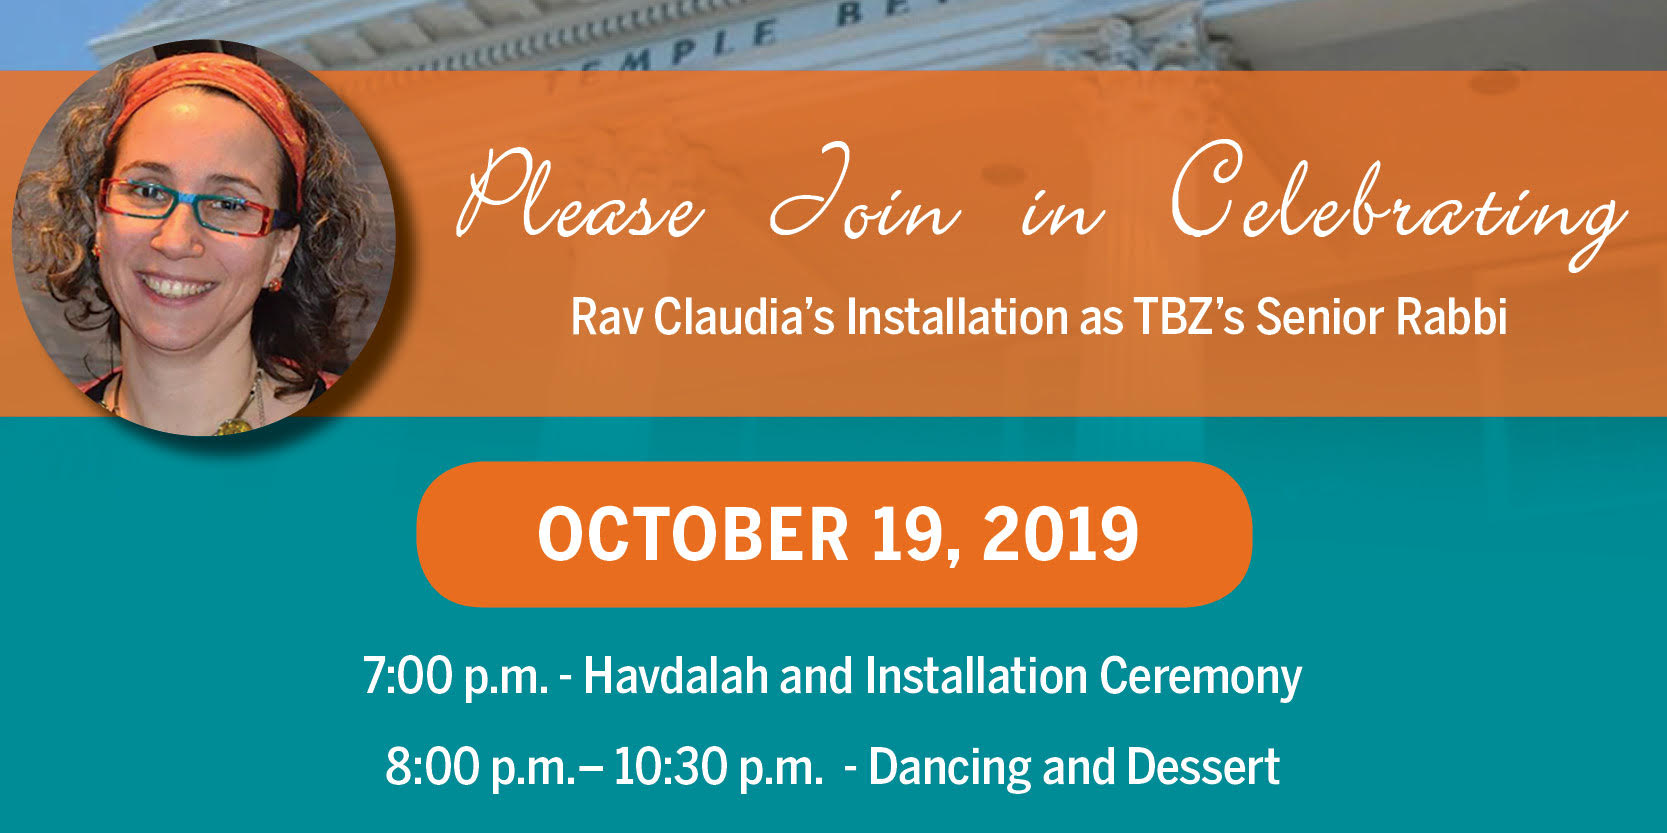 """<a href=""""https://www.tbzbrookline.org/event/installation""""                                     target="""""""">                                                                 <span class=""""slider_title"""">                                     Celebrate Rav Claudia's Installation As Our Senior Rabbi                                </span>                                                                 </a>                                                                                                                                                                                       <span class=""""slider_description"""">Join us at 7pm for Havdalah and the Ceremony, then enjoy dessert and dancing from 8pm on.</span>                                                                                     <a href=""""https://www.tbzbrookline.org/event/installation"""" class=""""slider_link""""                             target="""""""">                             LEARN MORE & RSVP                            </a>"""